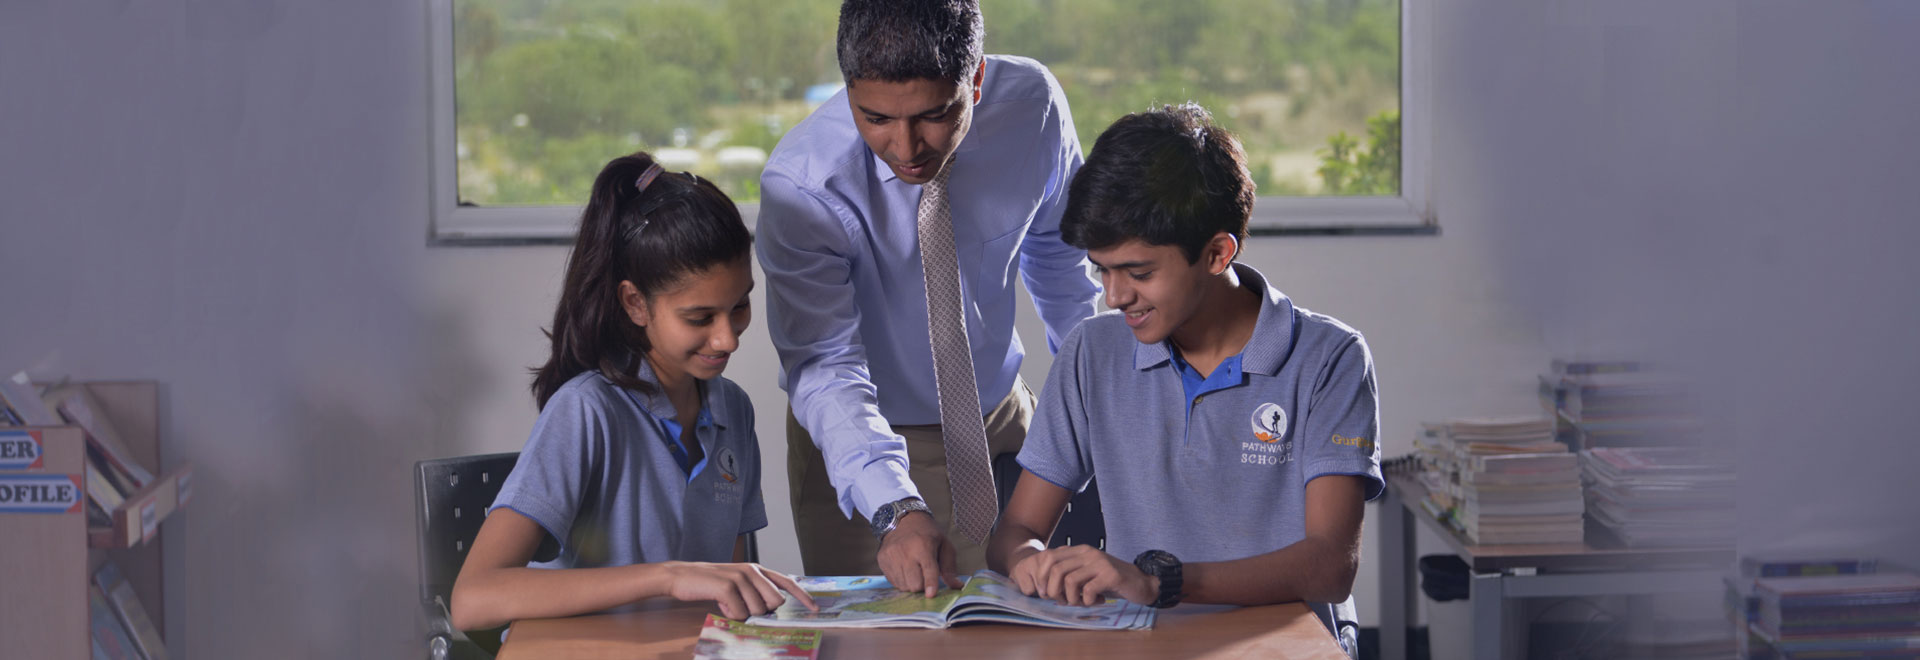 School in Noida